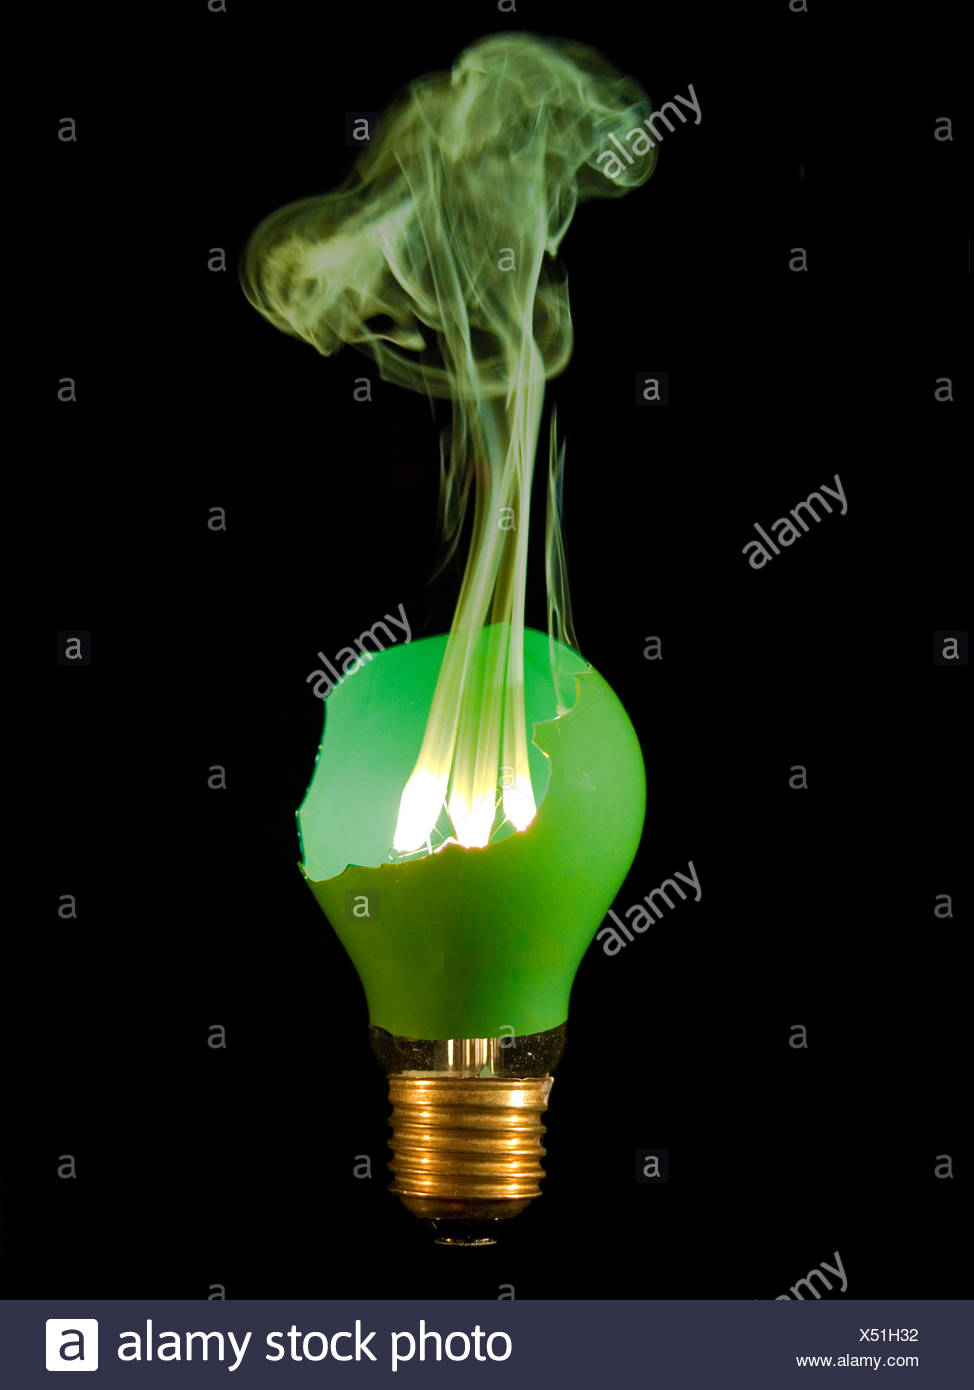 shine shines bright lucent light serene luminous green broken electric shiner Stock Photo